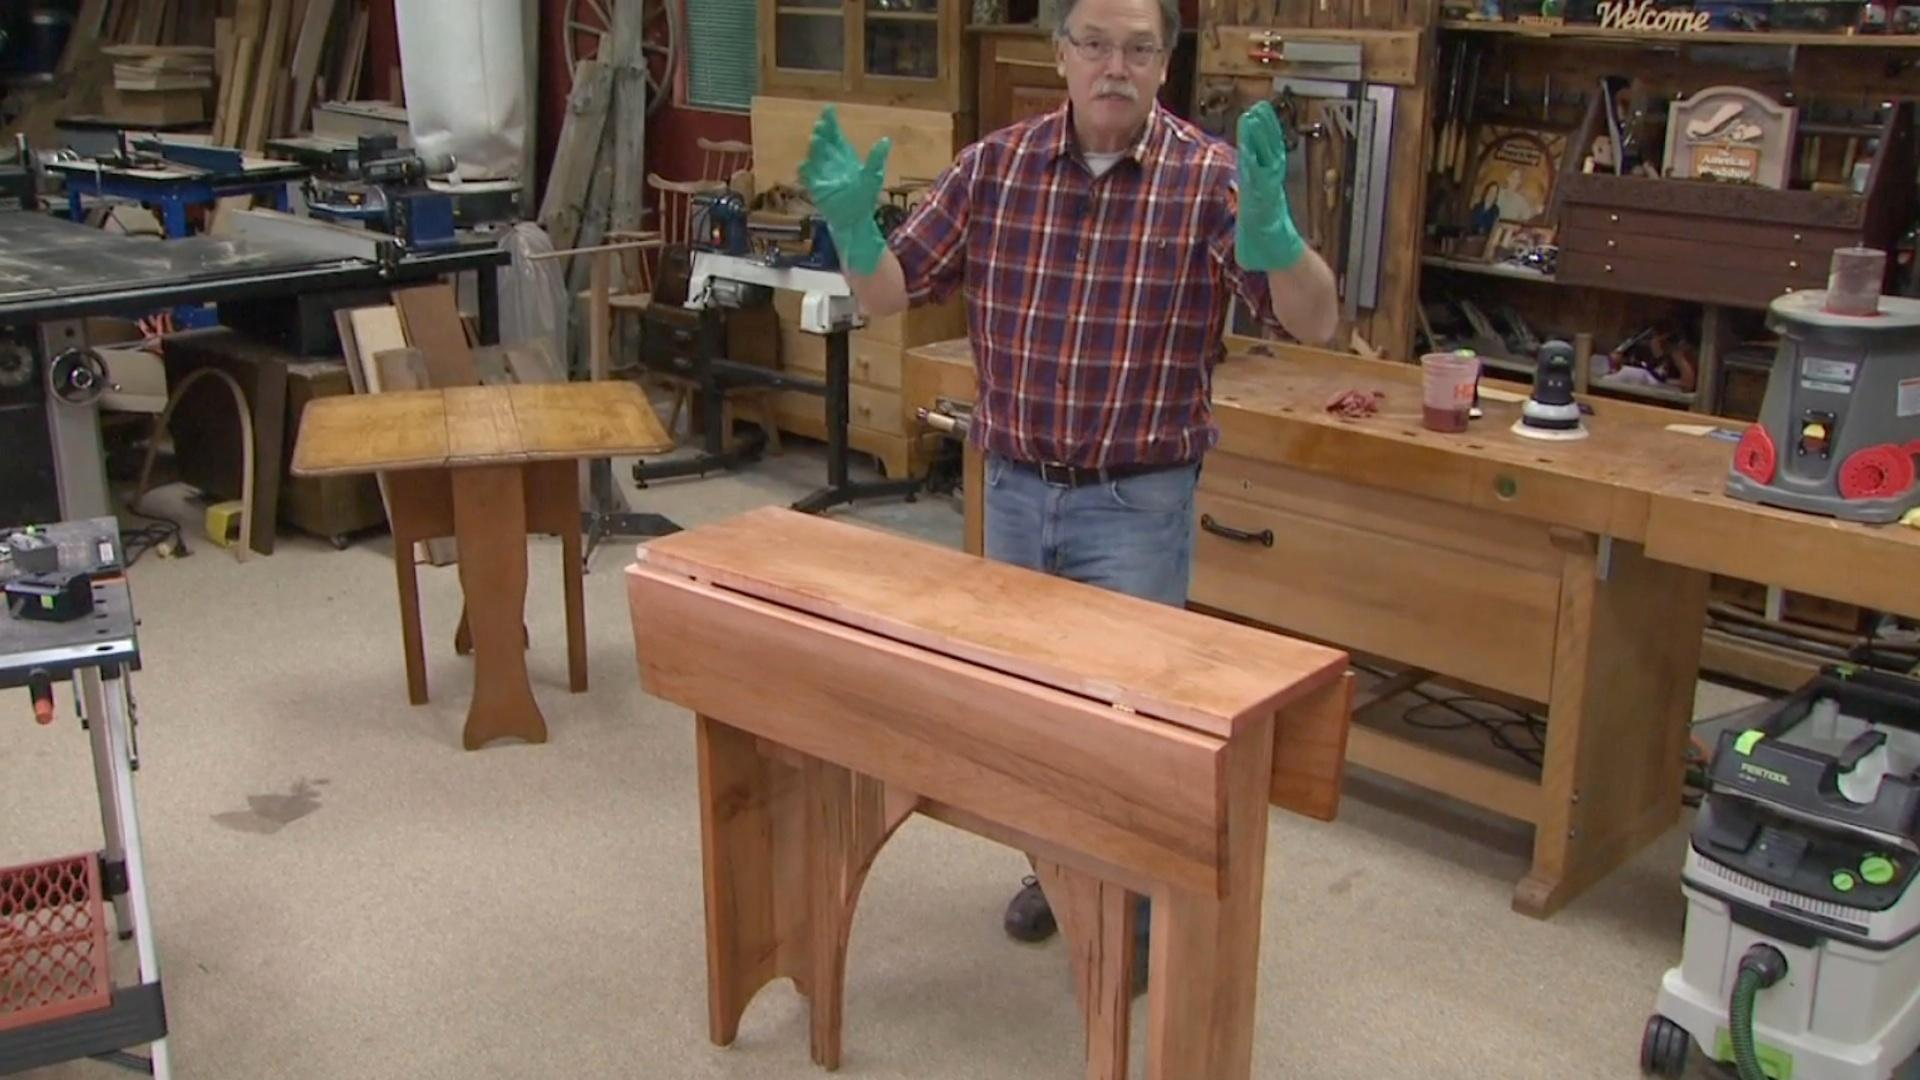 PBS-Woodshop ... Online of American Woodshop on PBS | A Tool Bench for ...